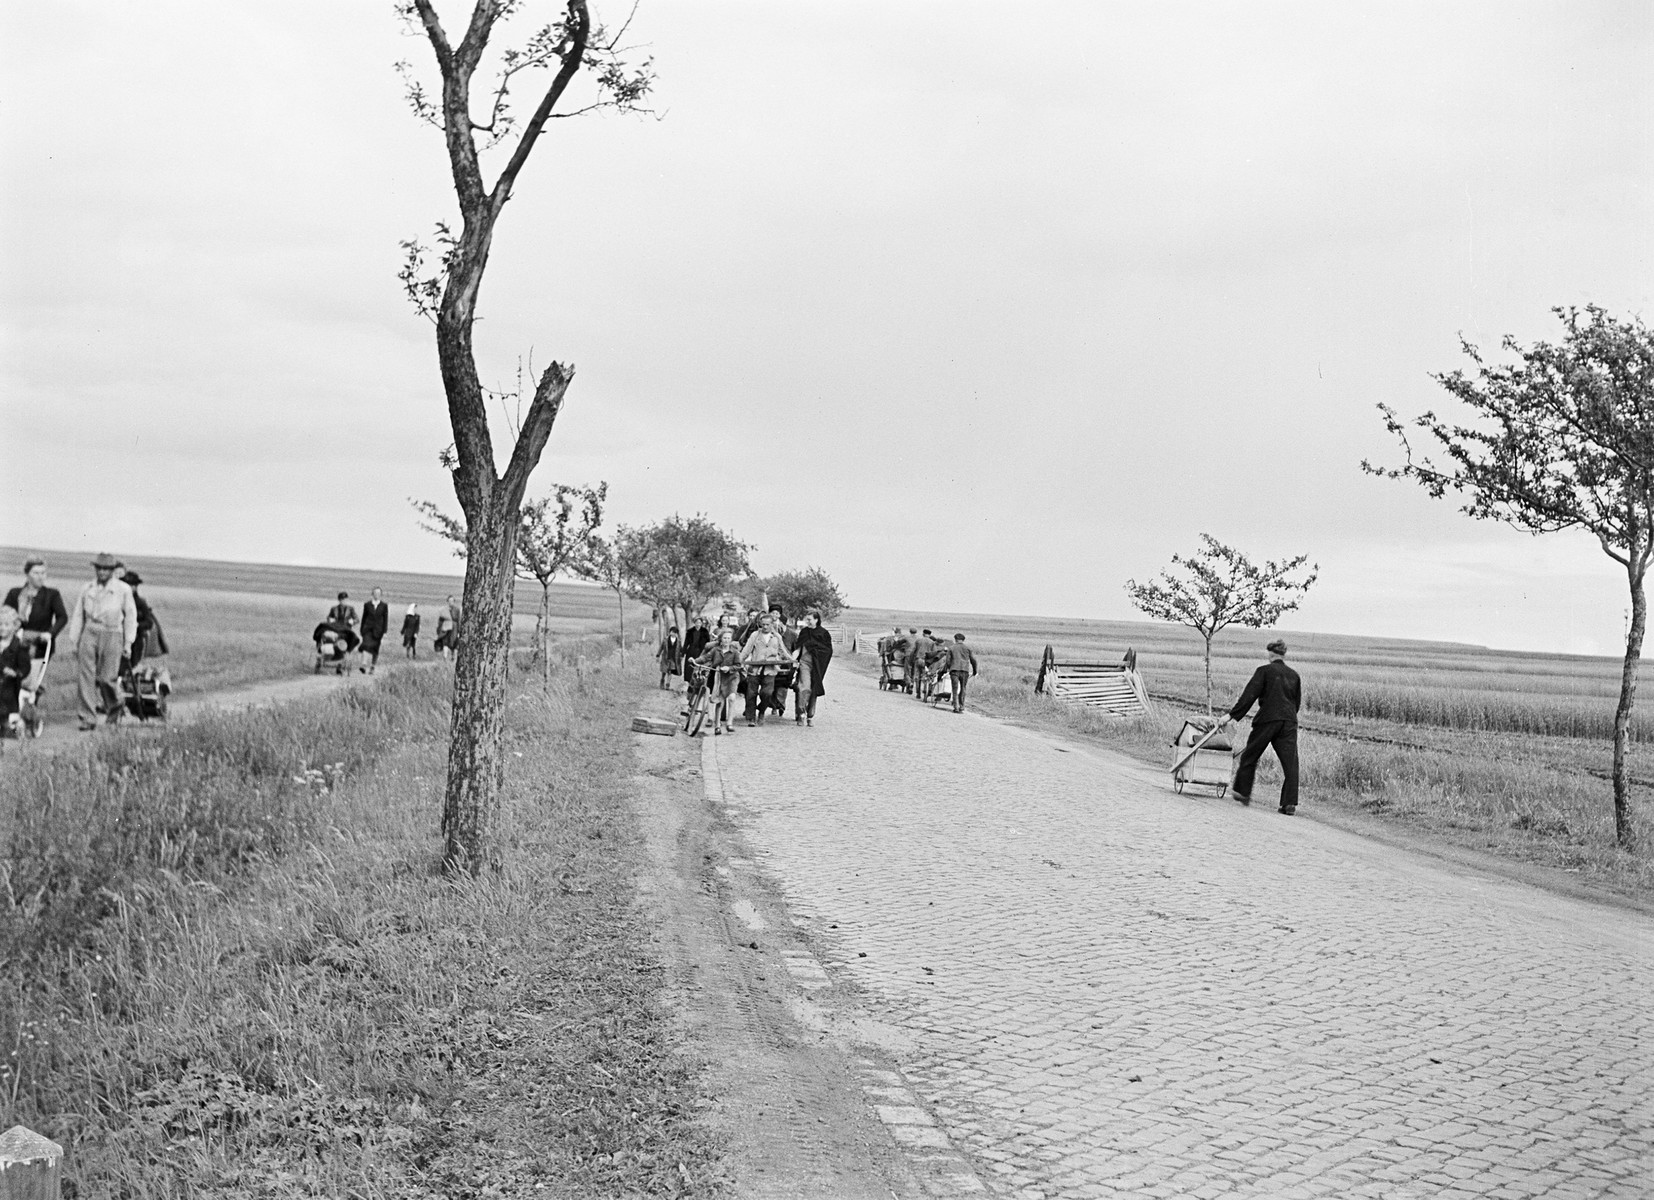 French DPs, likely former forced laborers, walk down a road outside of Weimar, Germany.